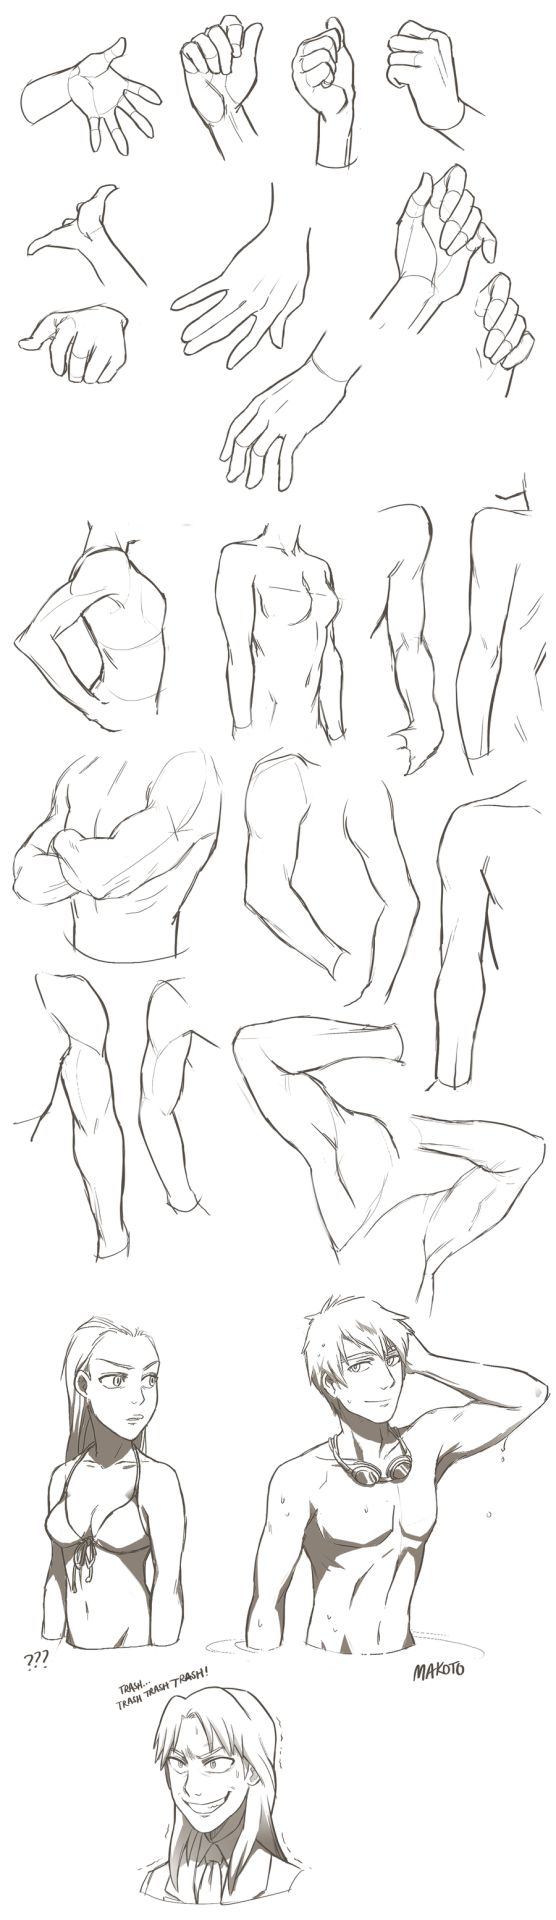 Studies/Swimsuits/Ichijou by YanYu  http://artist-refs.tumblr.com/tagged/crossed+arms?og=1